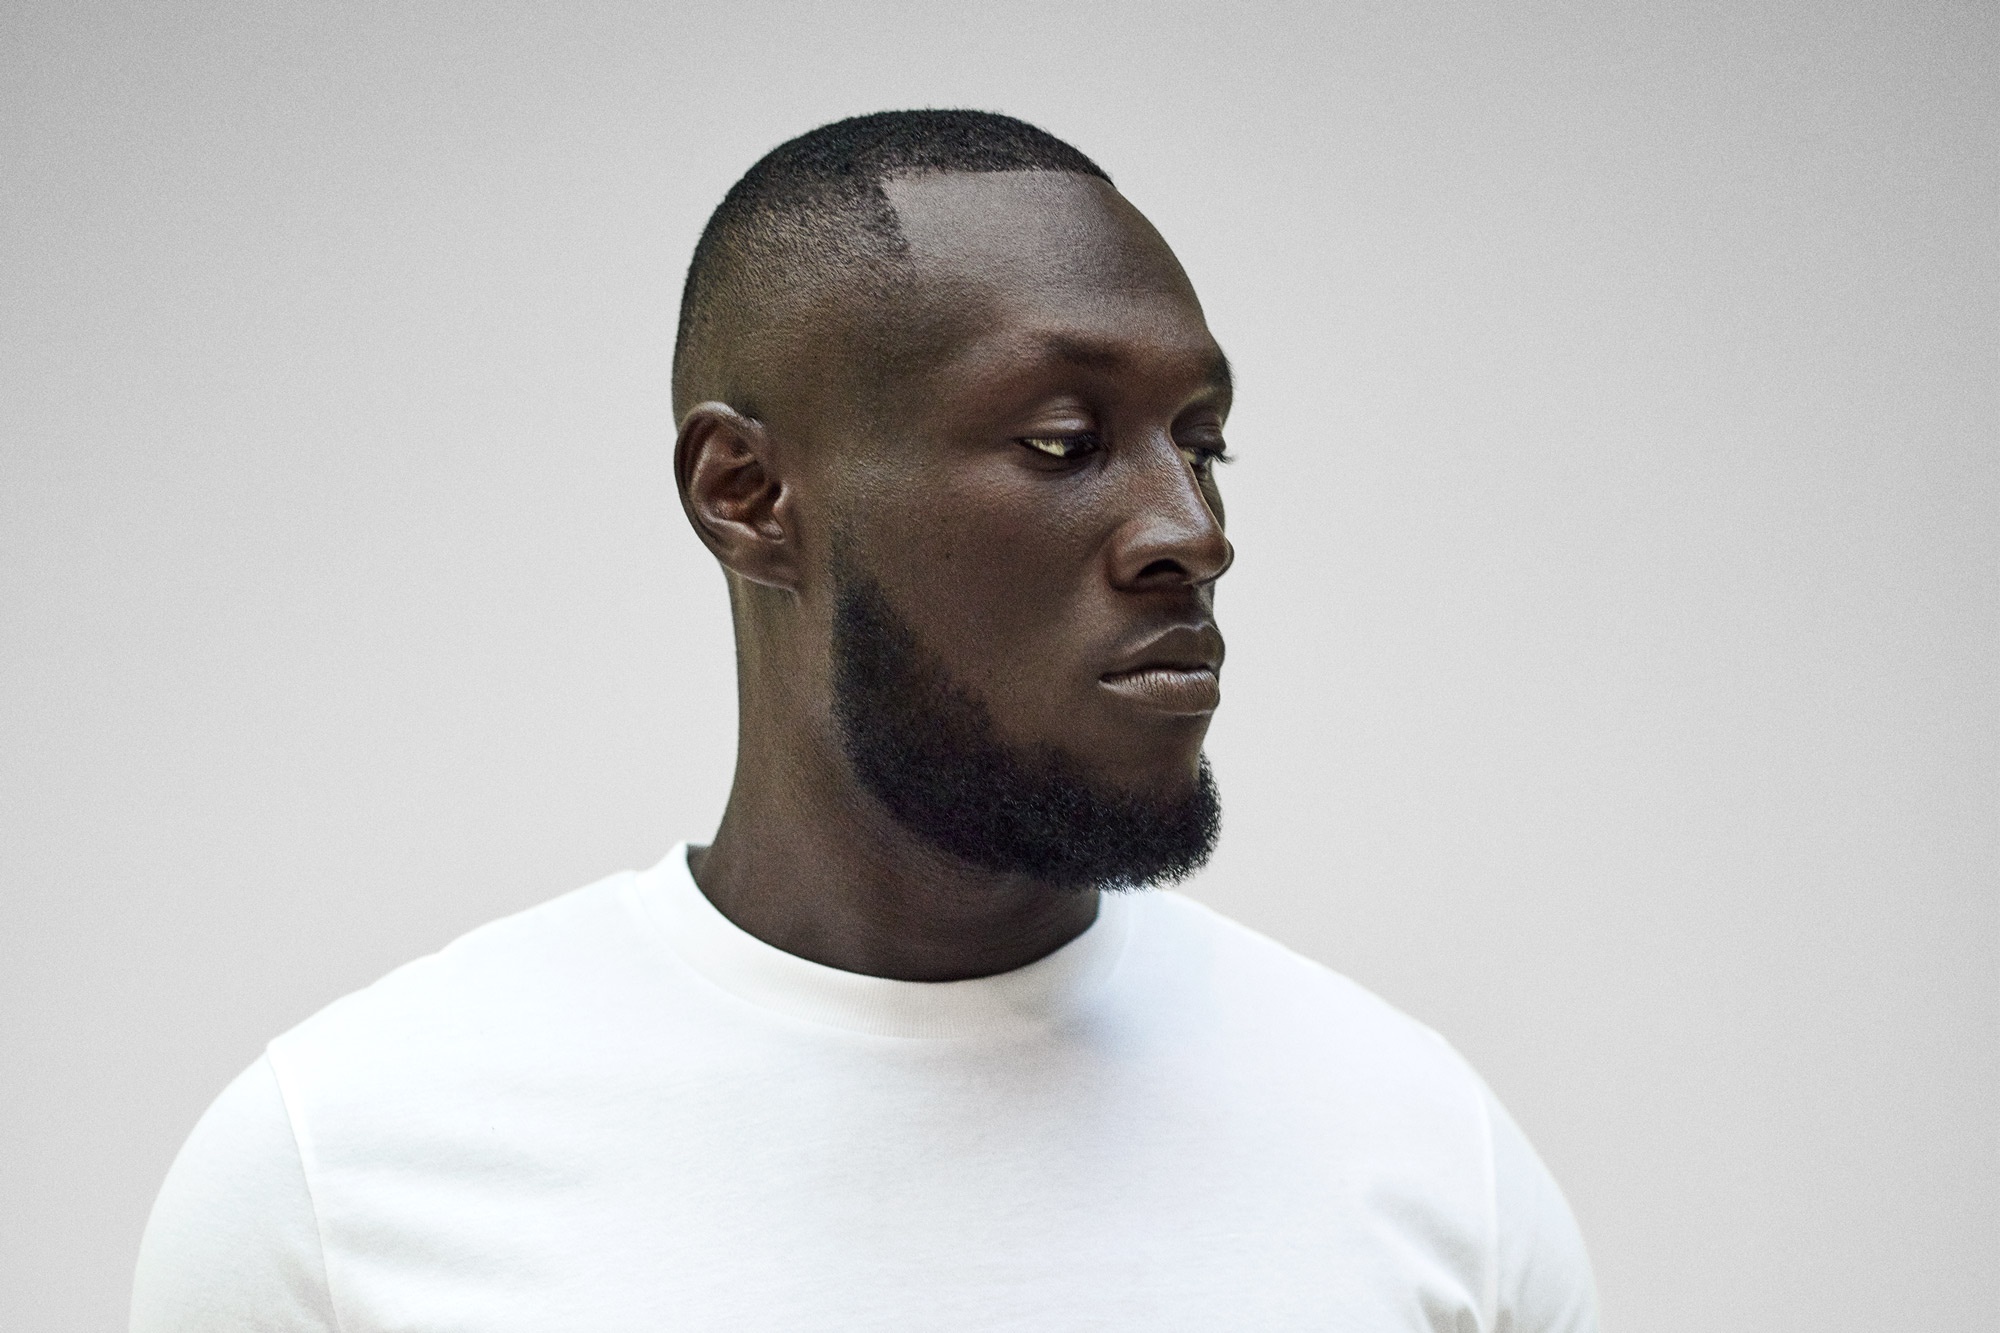 where is stormzy from